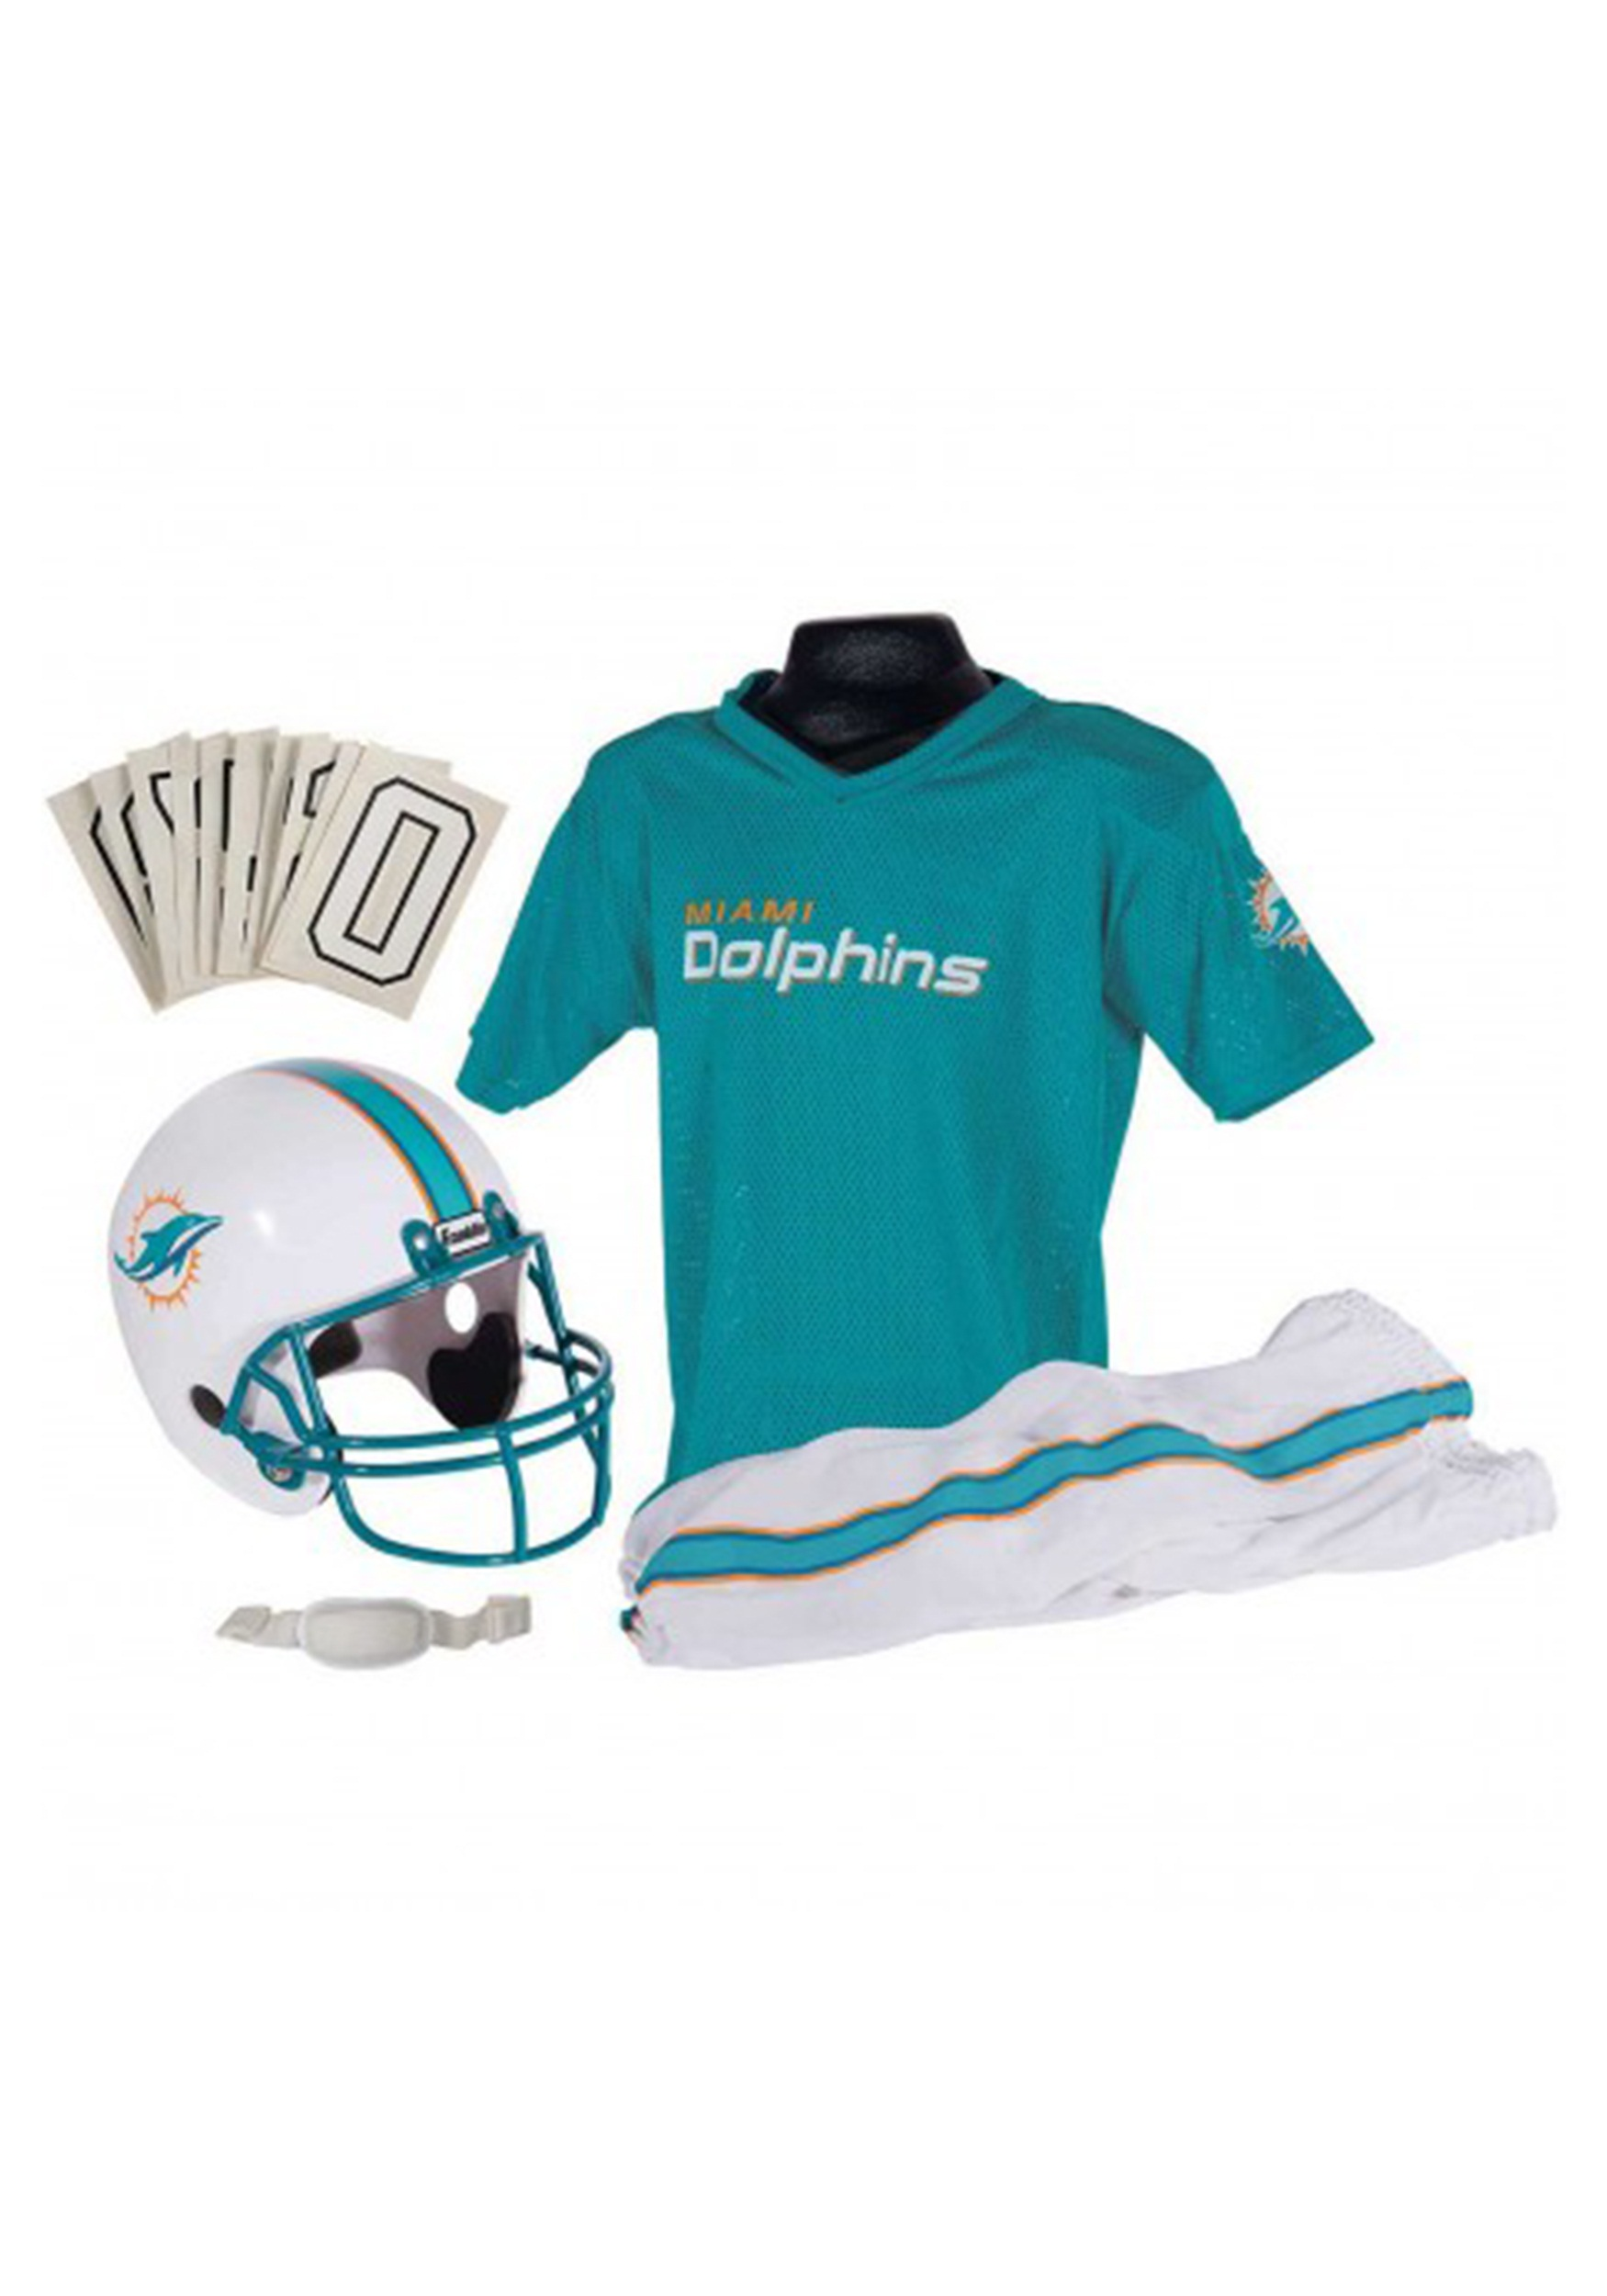 NFL Dolphins Uniform Costume FA15700F23